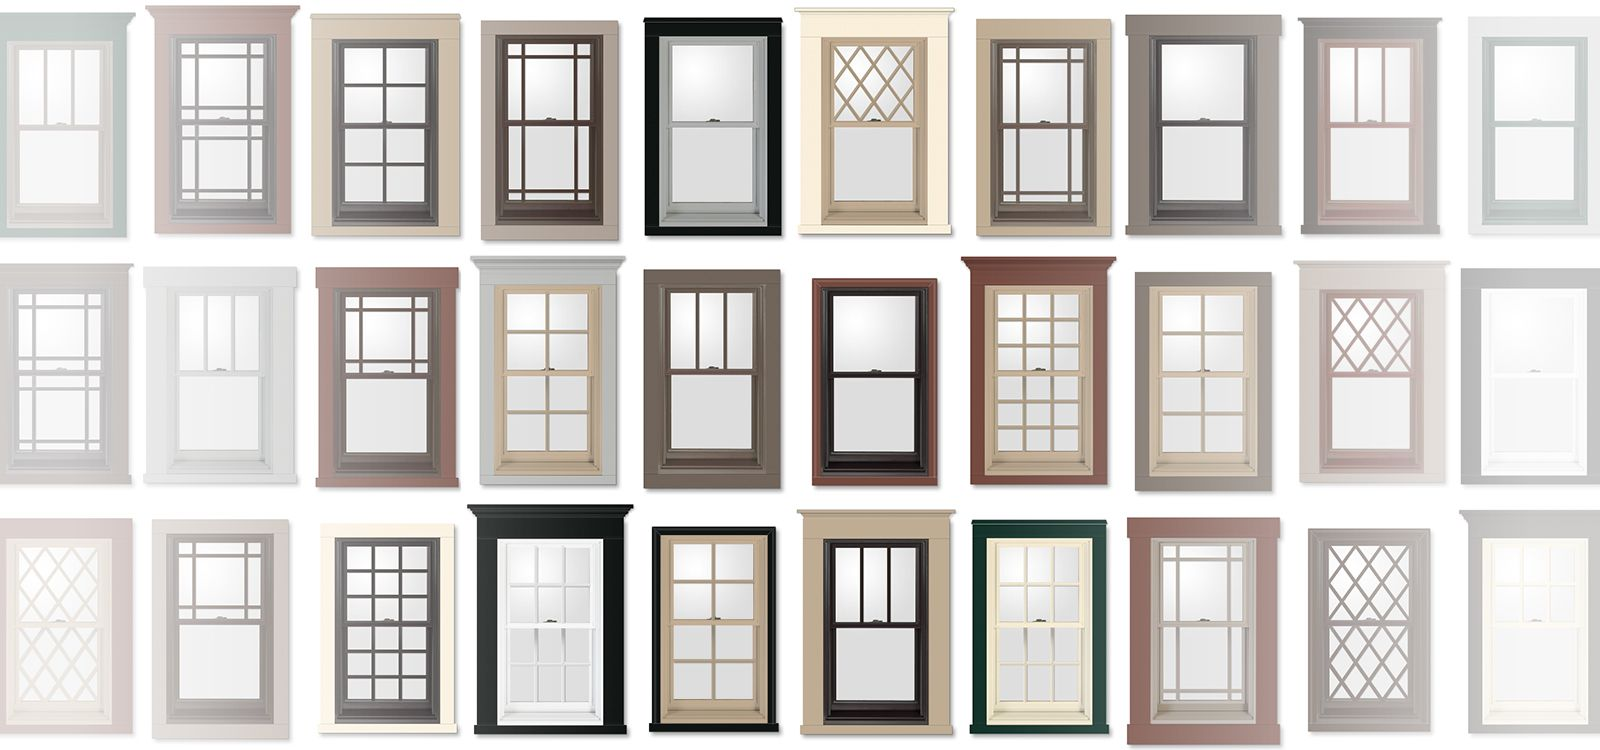 Andersen windows and patio doors 1 in quality and used for Window door design